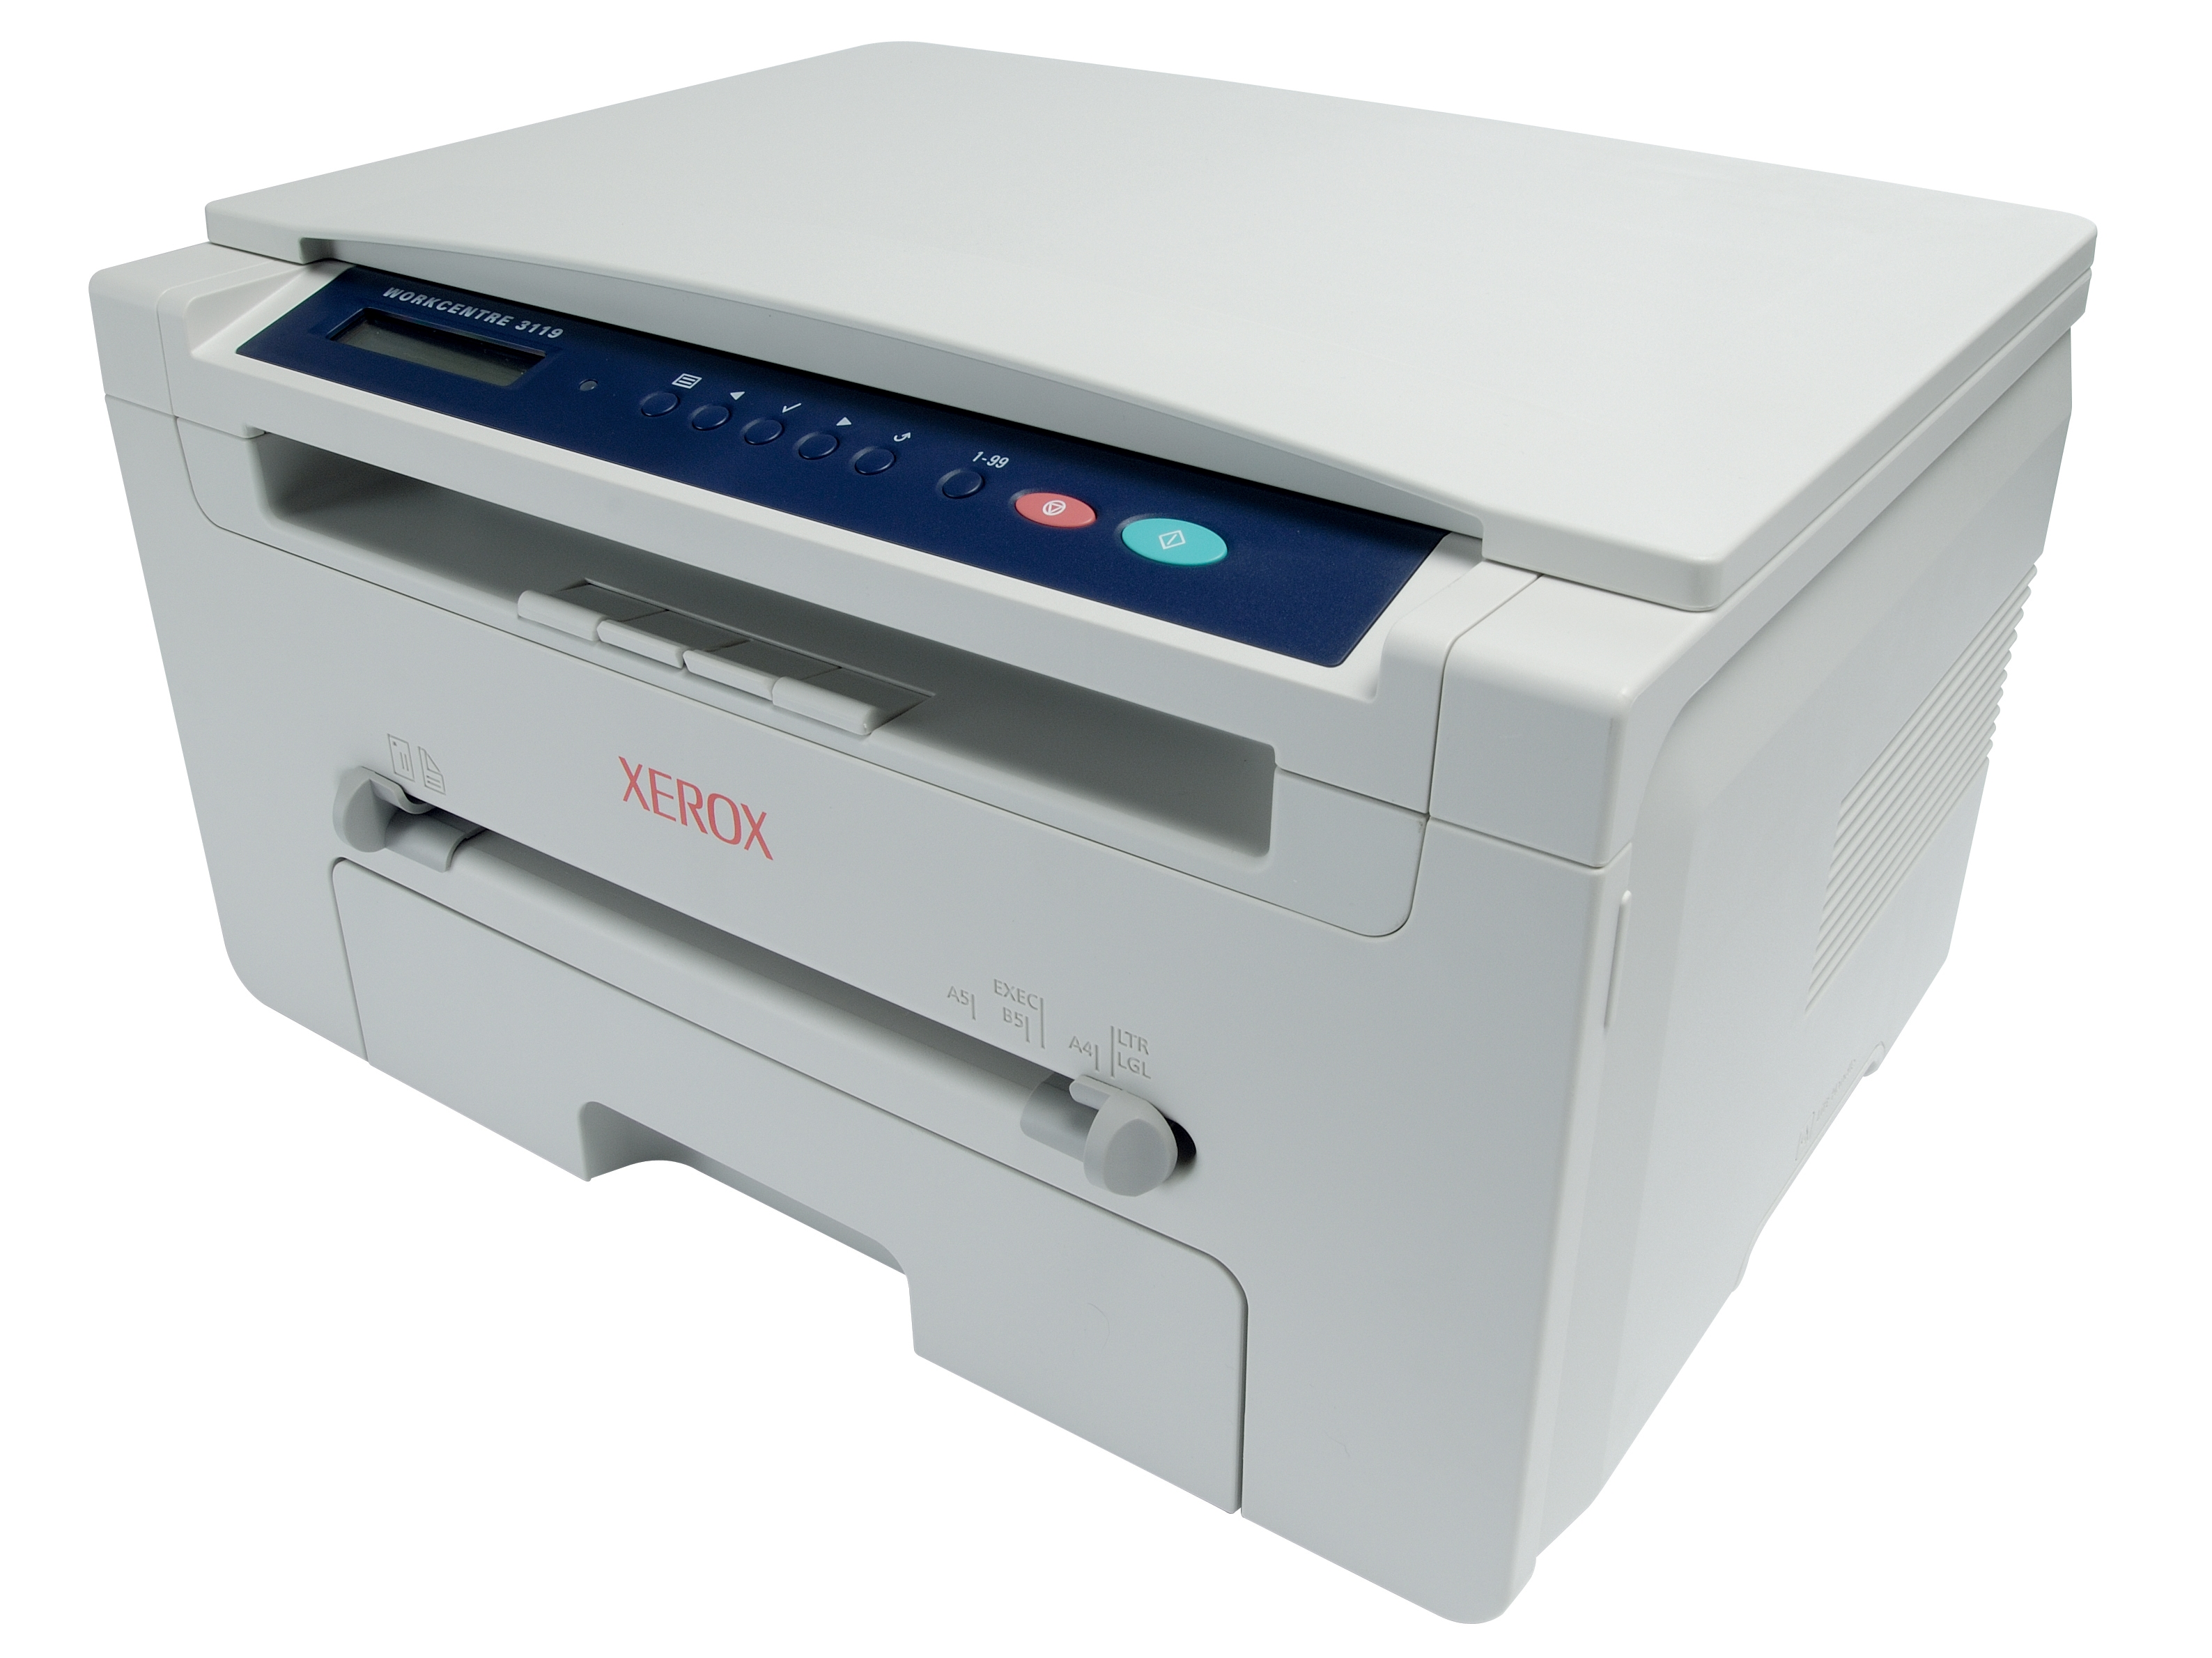 Xerox WorkCentre 3119 review | TechRadar